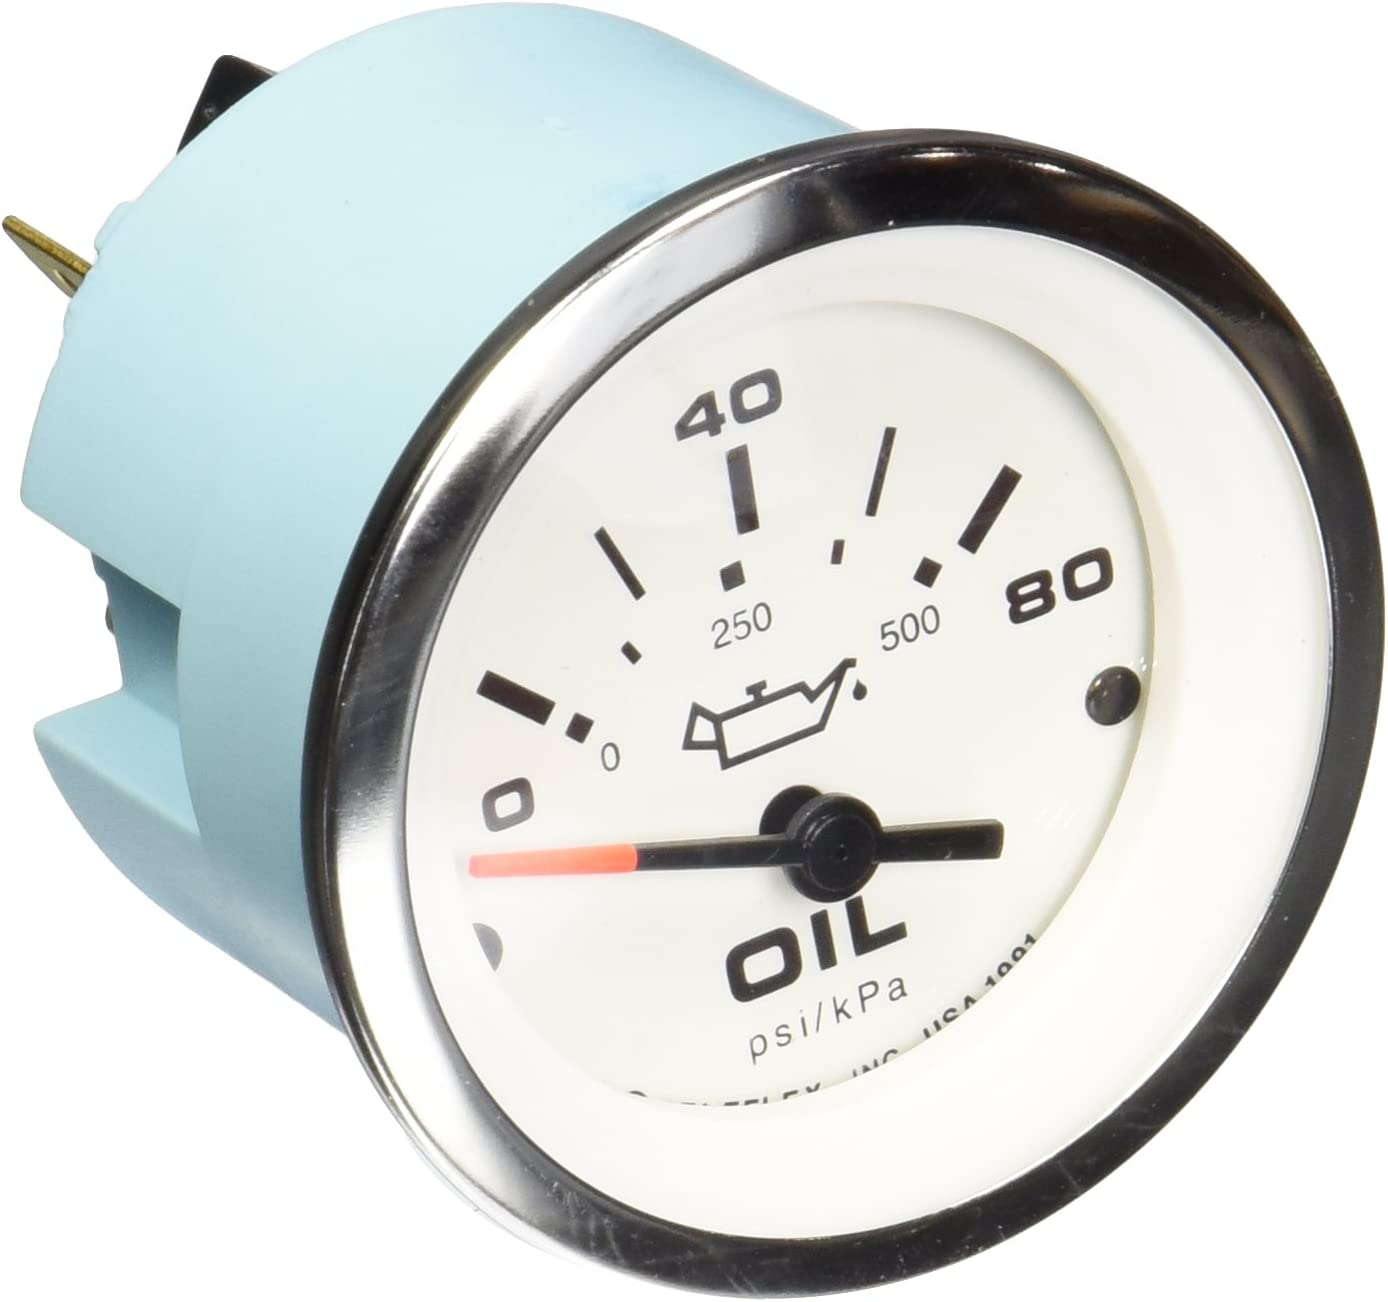 Sierra International 59653P Lido 80 PSI Fog Resistant Oil Pressure Gauge